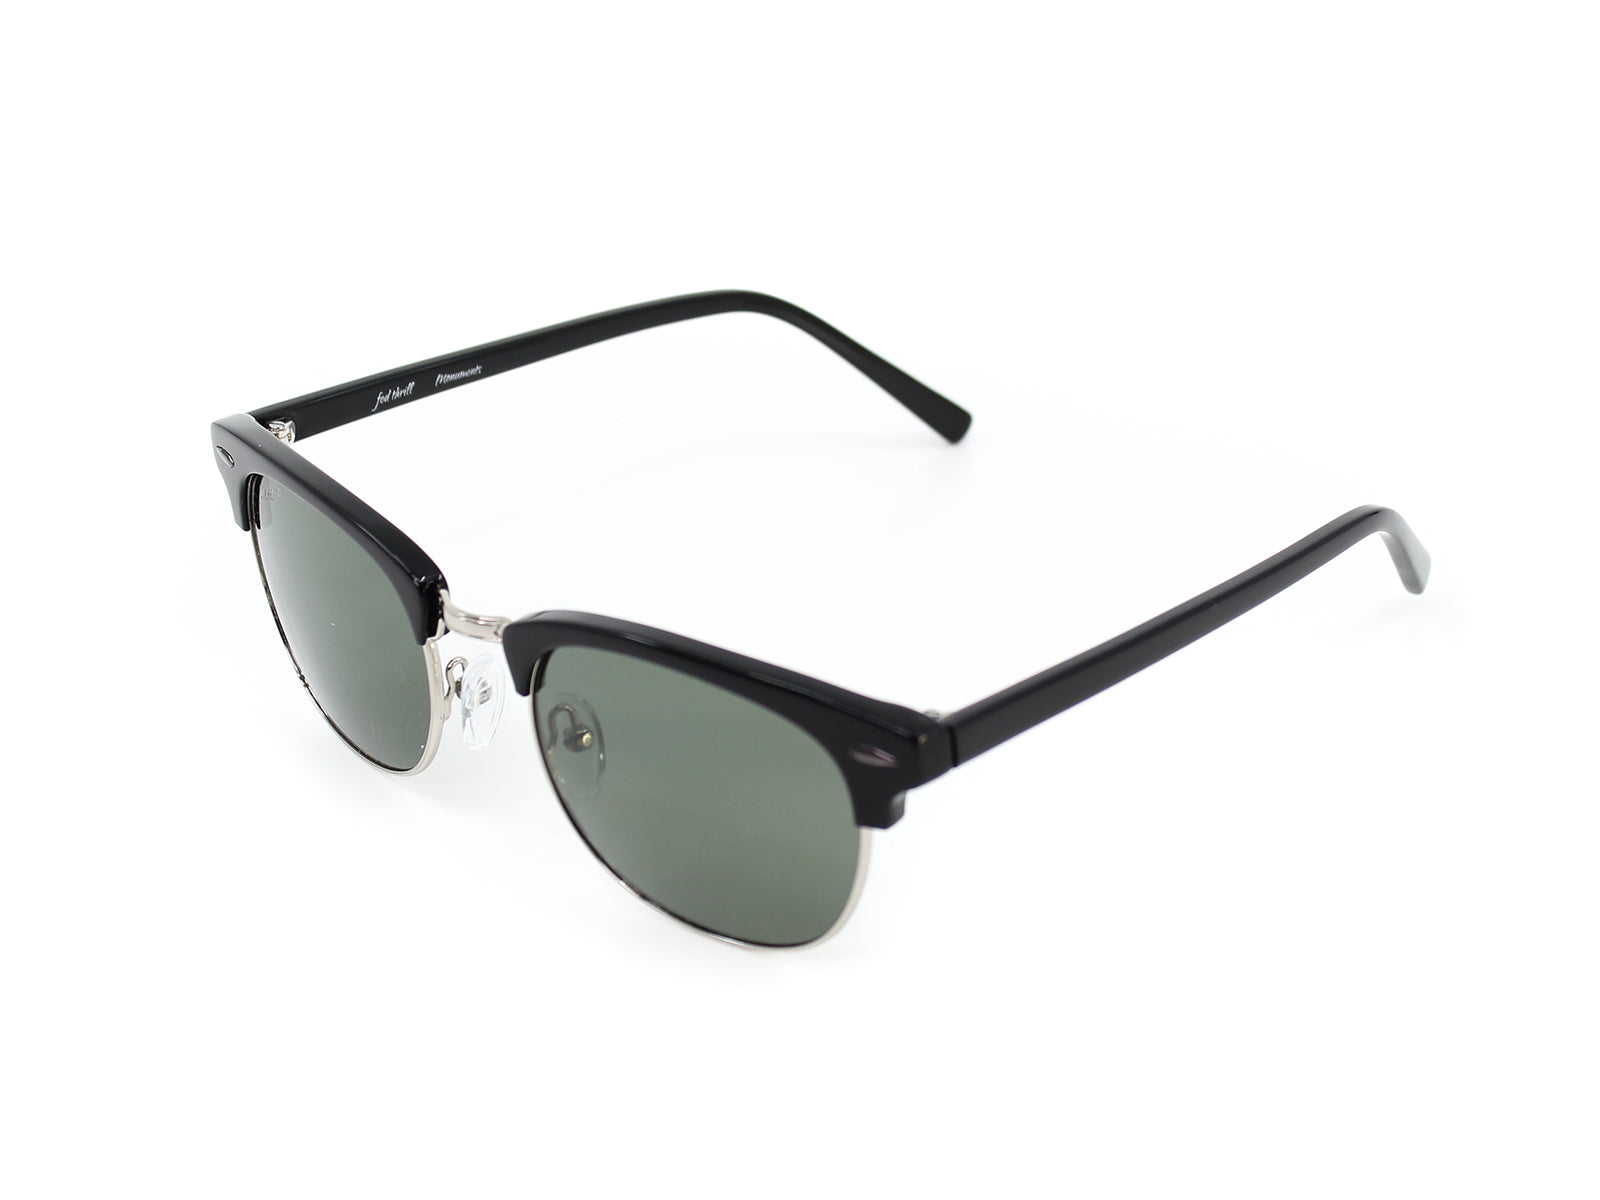 Monuments - Keys: Glossy Black & G15 Polarized